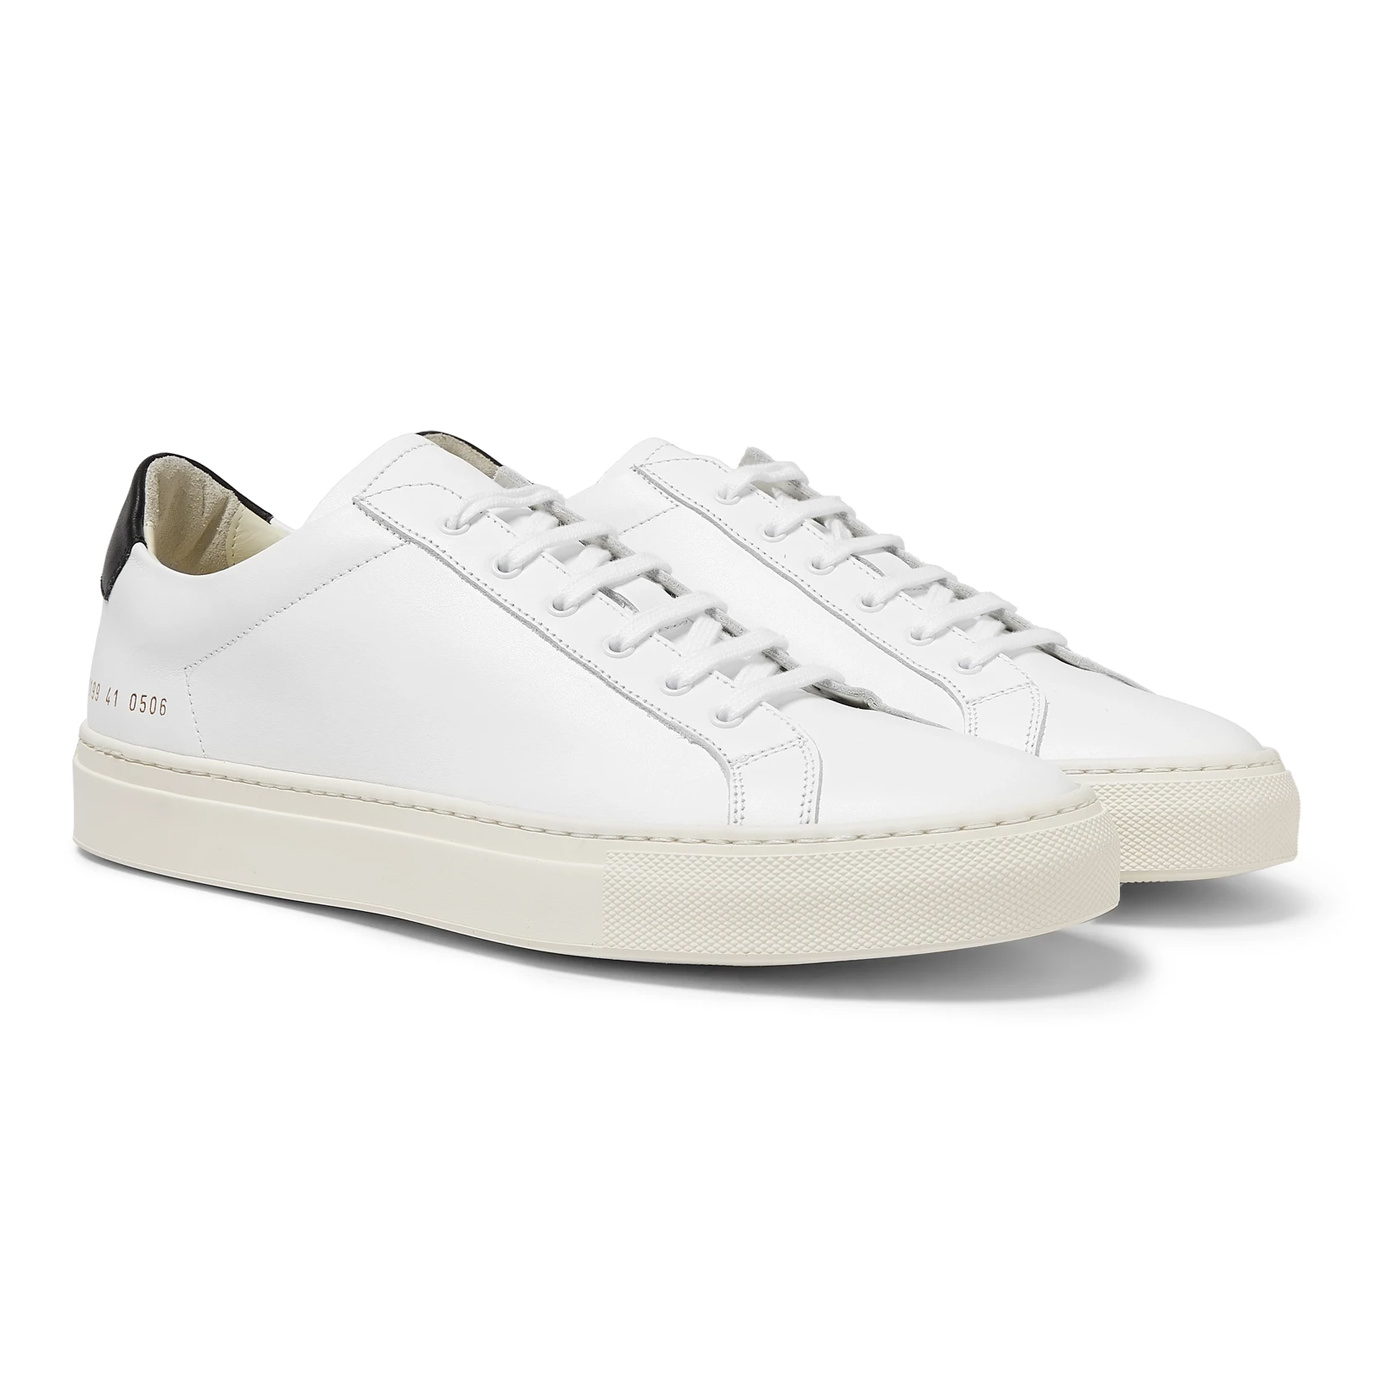 Style Mr Porter Sneakers Common Projects Original Achilles Cuir Retro